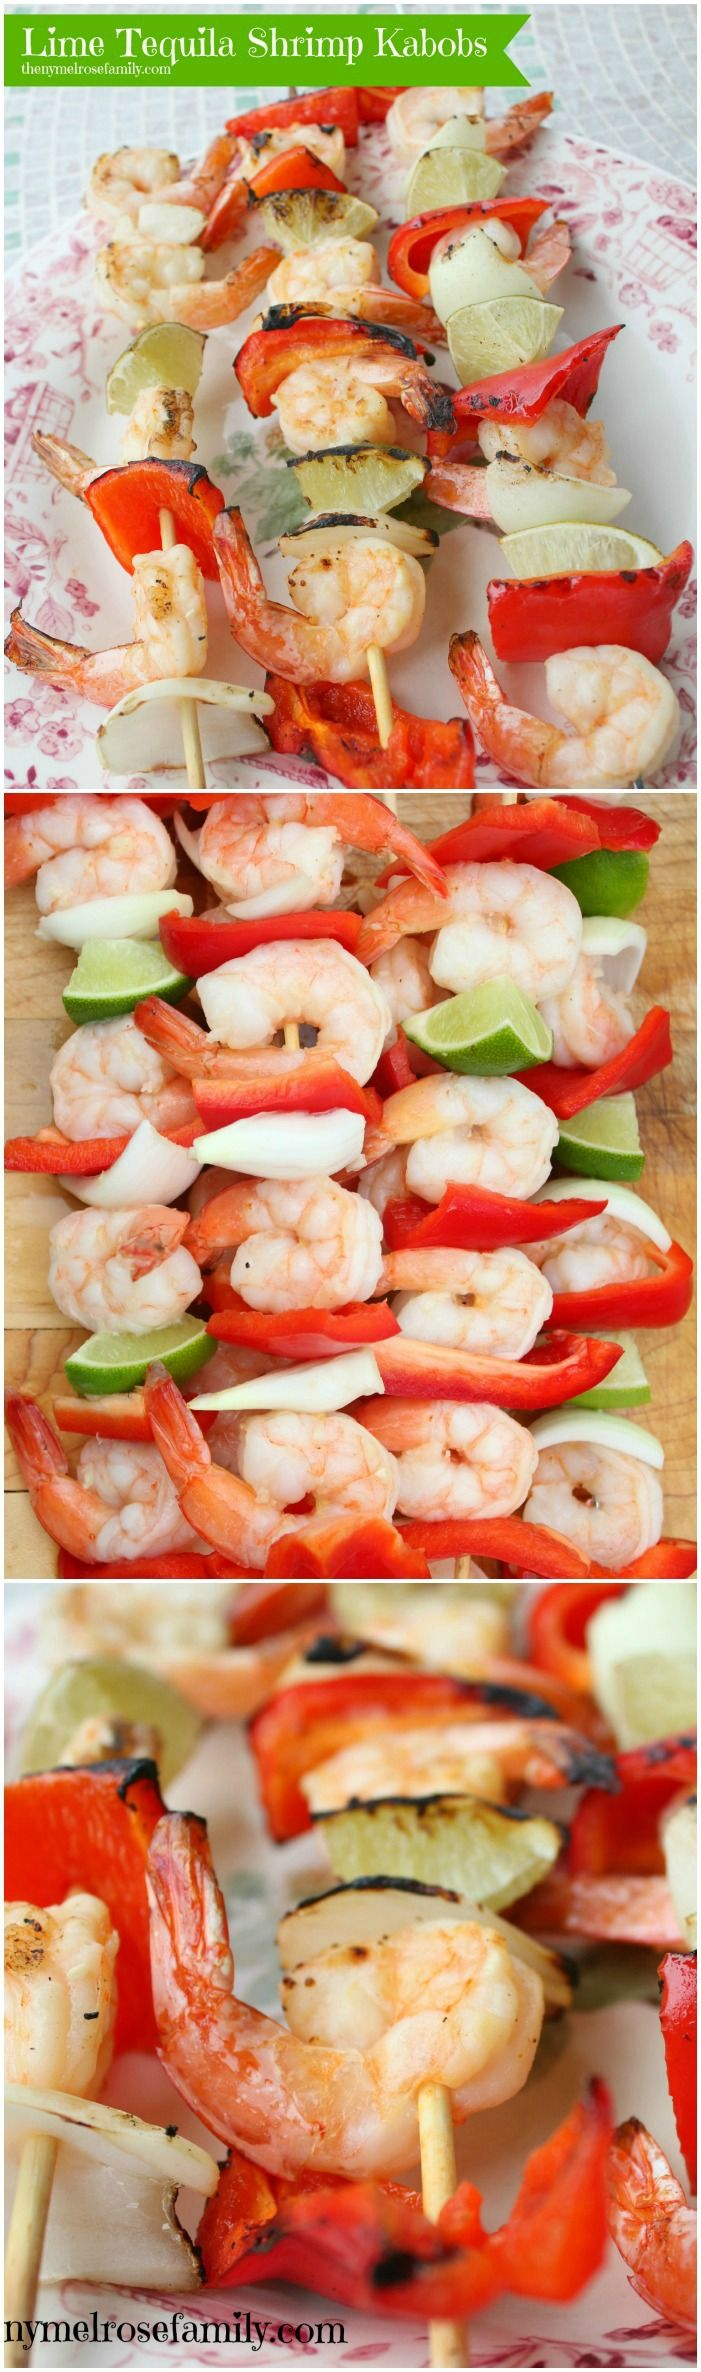 Lime Tequila Shrimp Kabobs